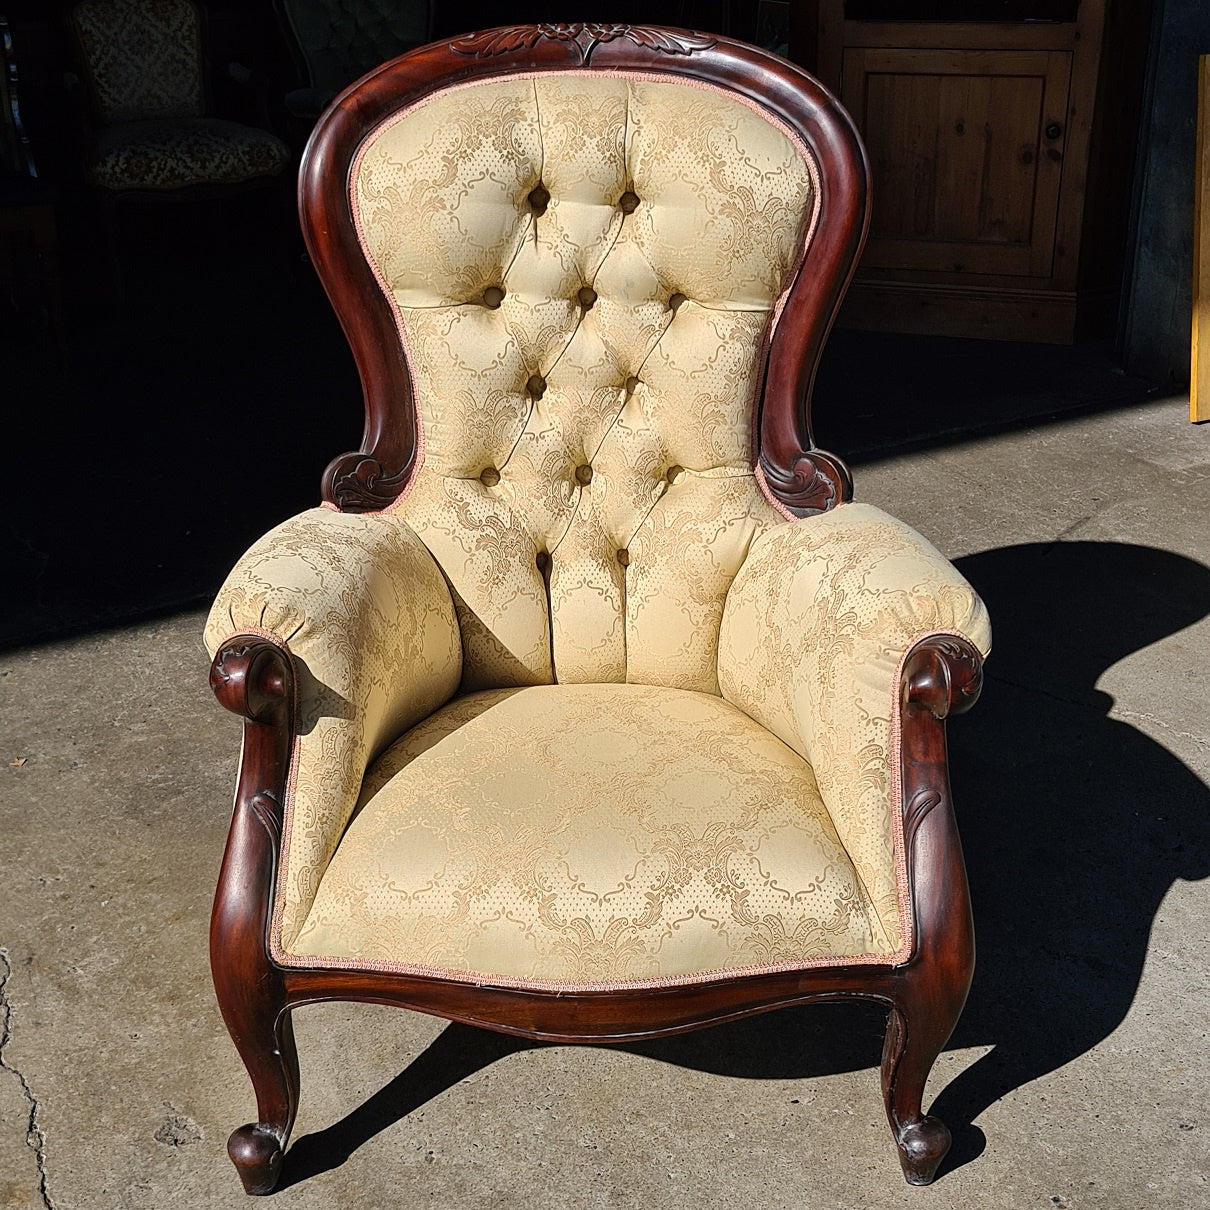 Antique Parlour Chair #2